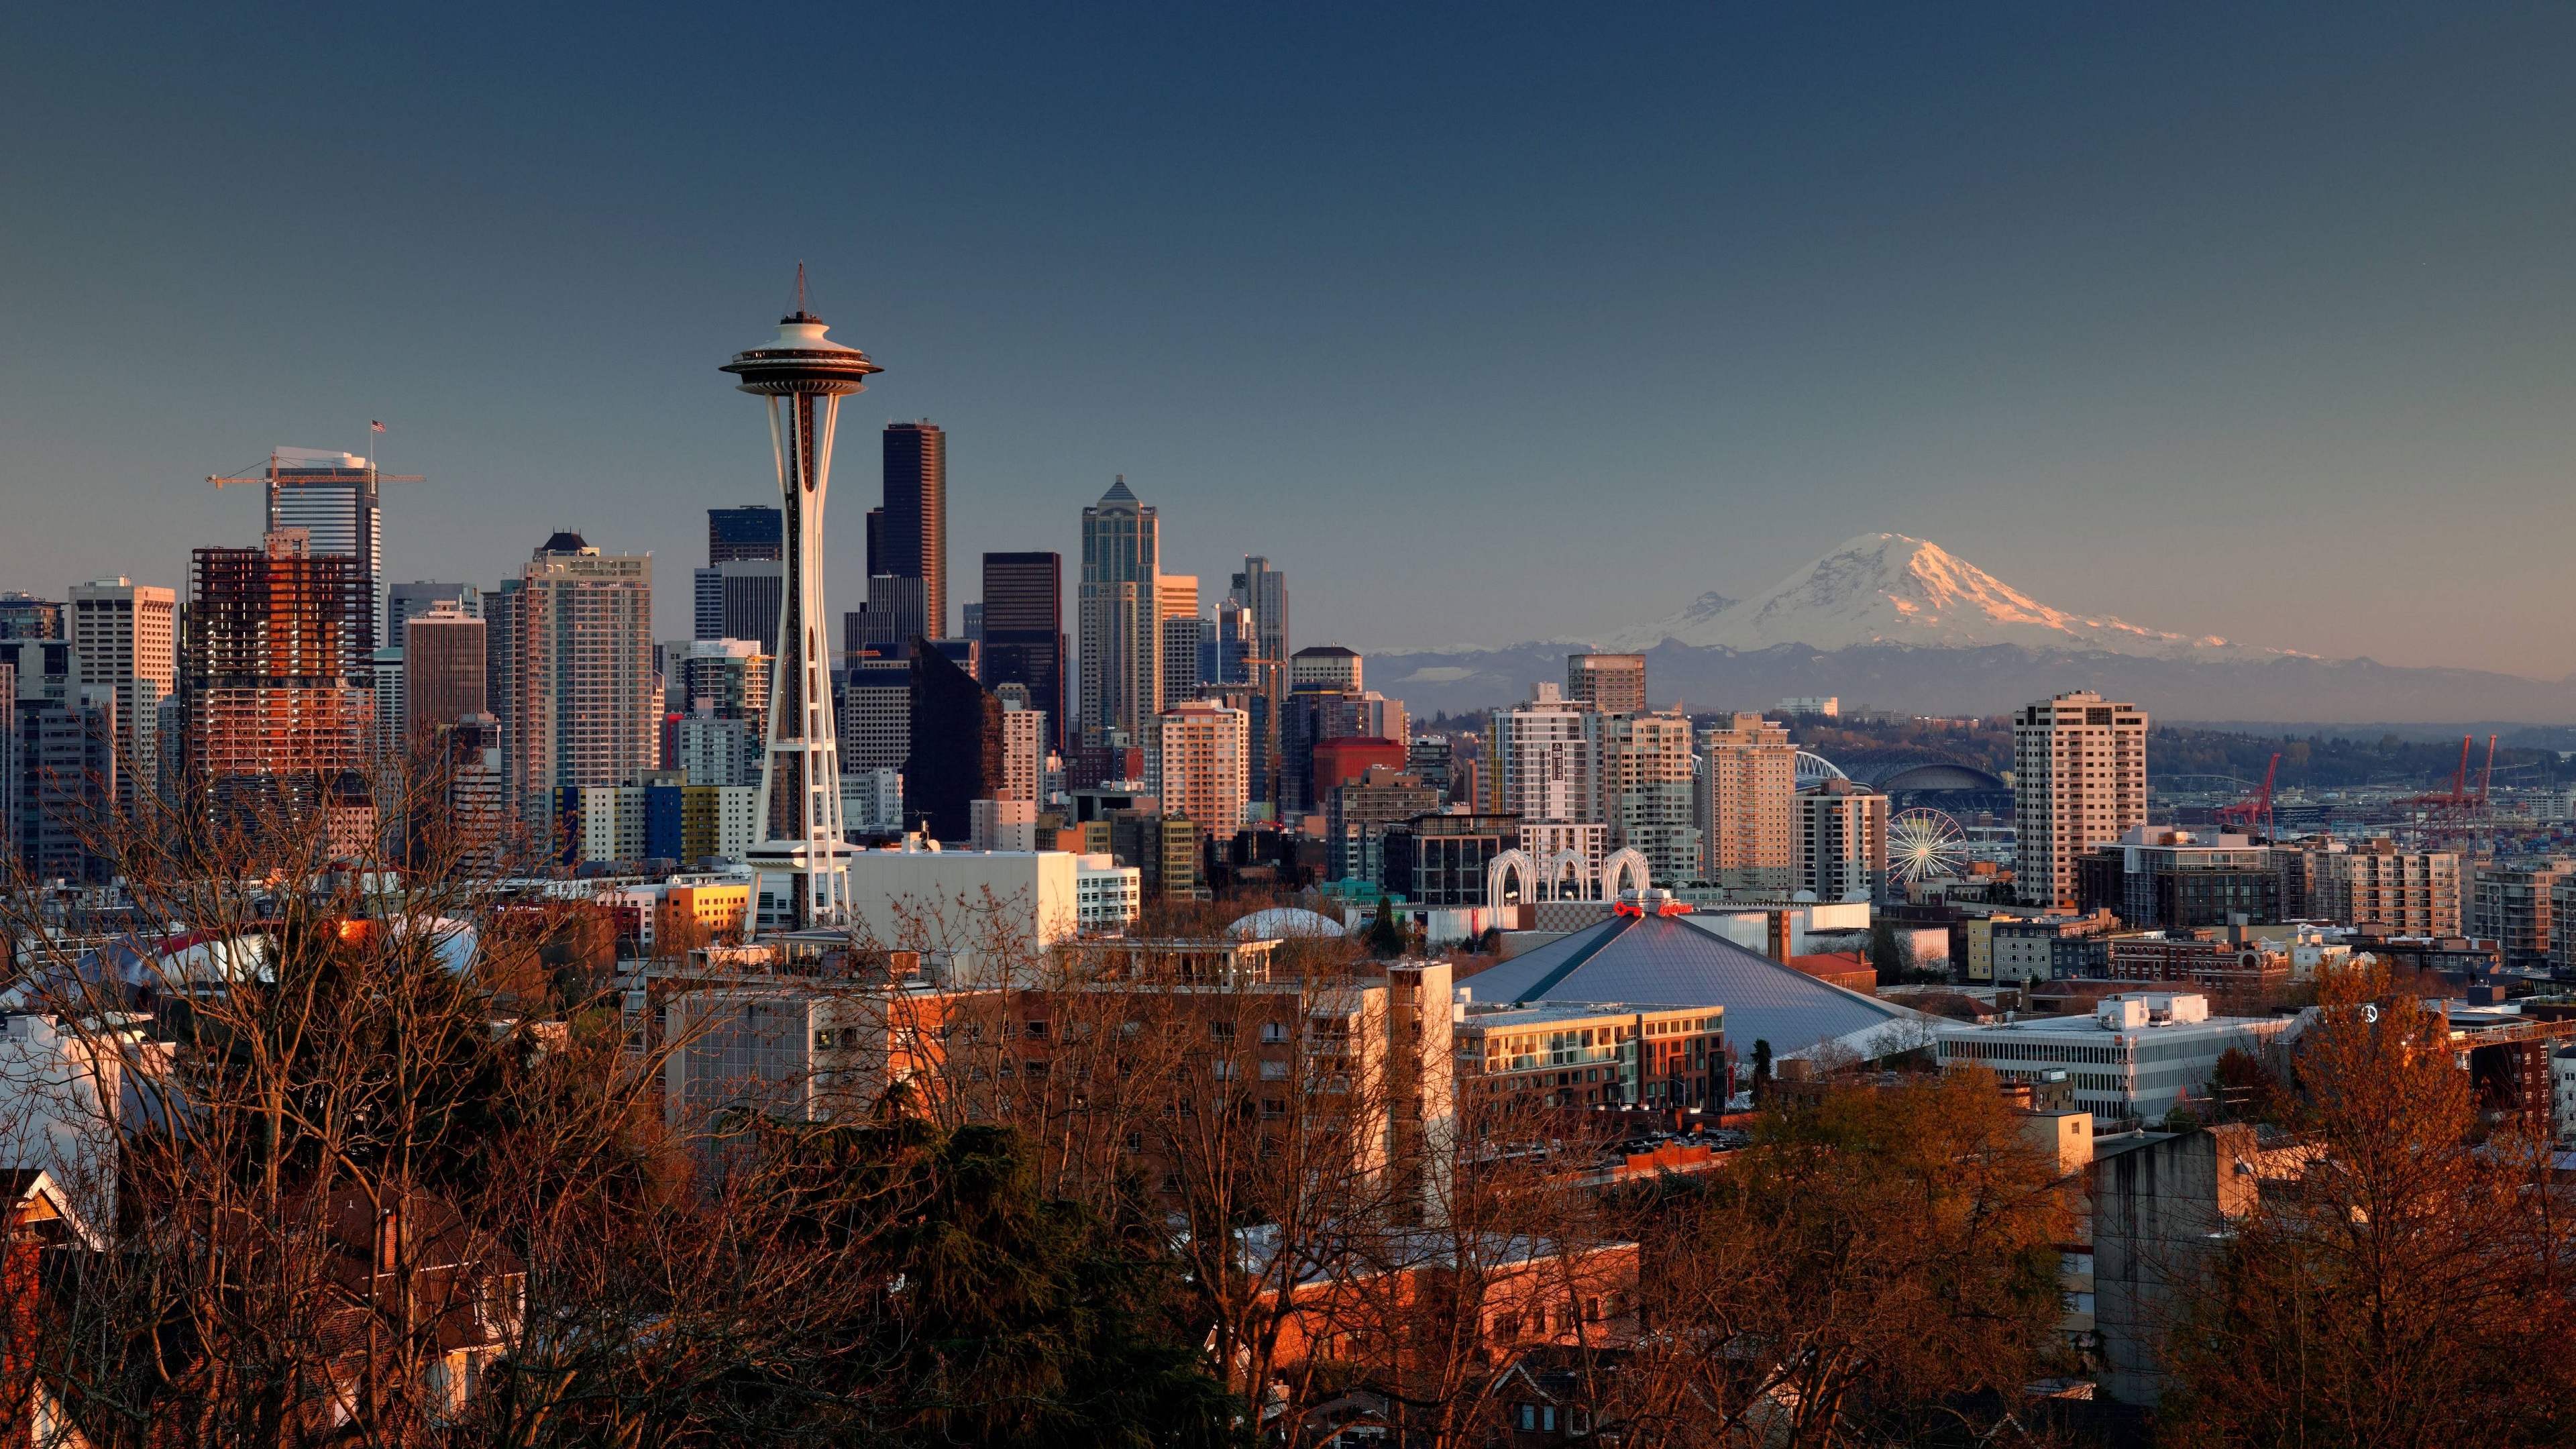 seattle 4k wallpaper background, wallpapers